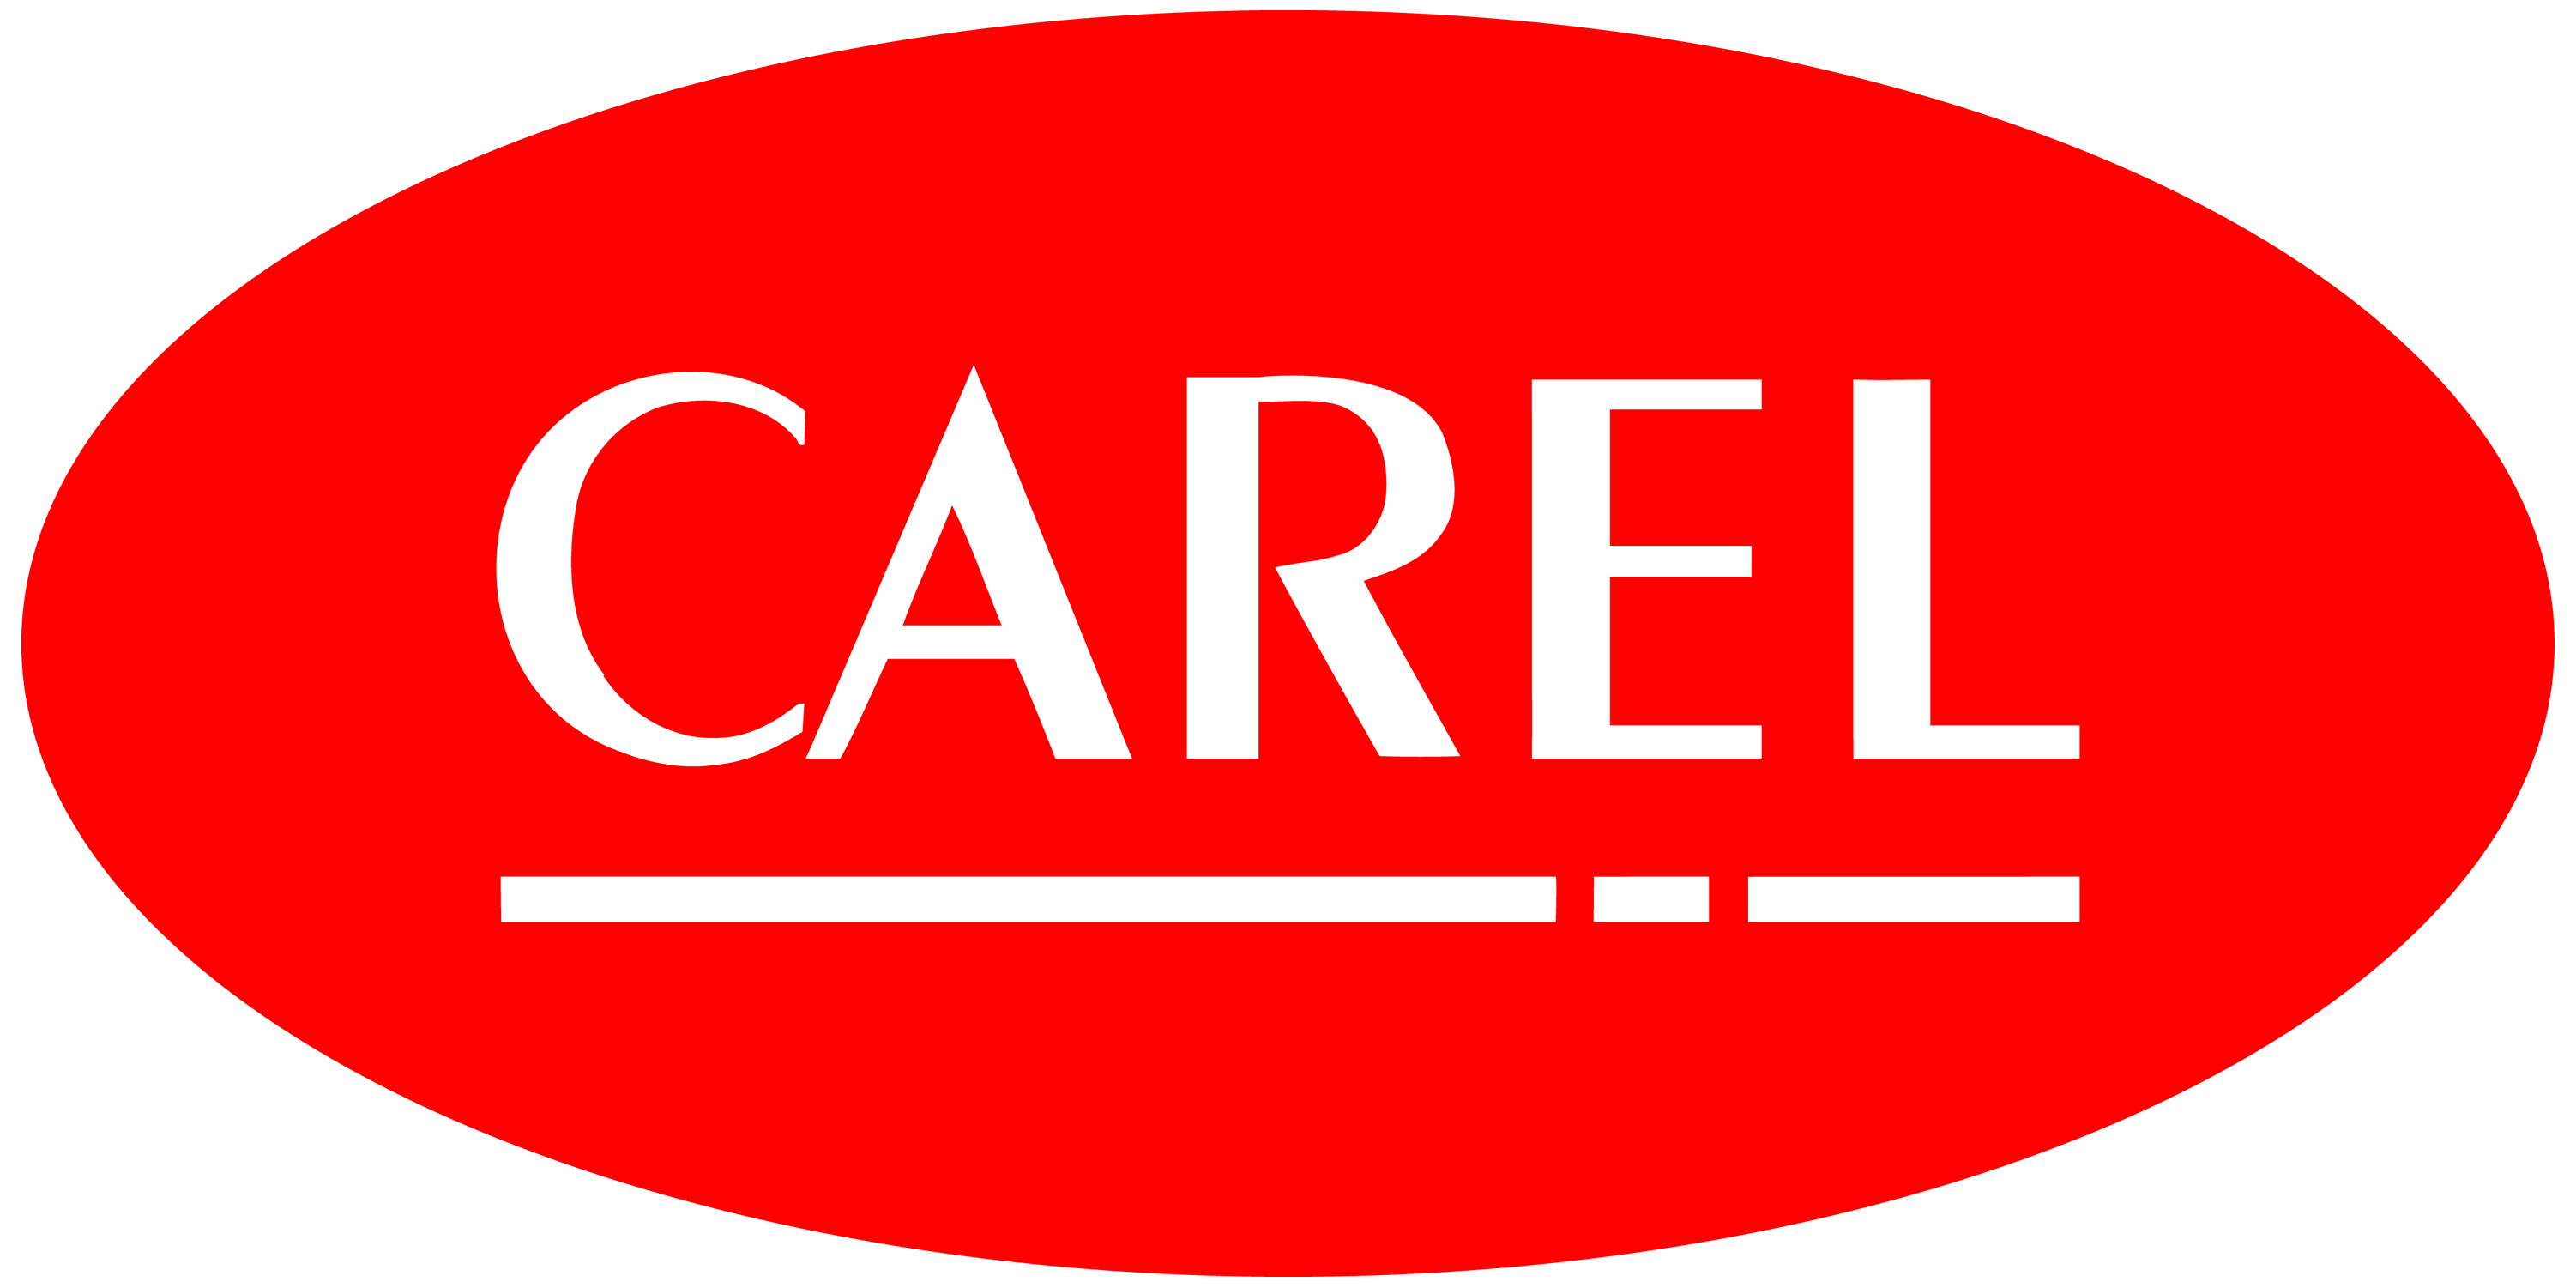 CAREL - Apps